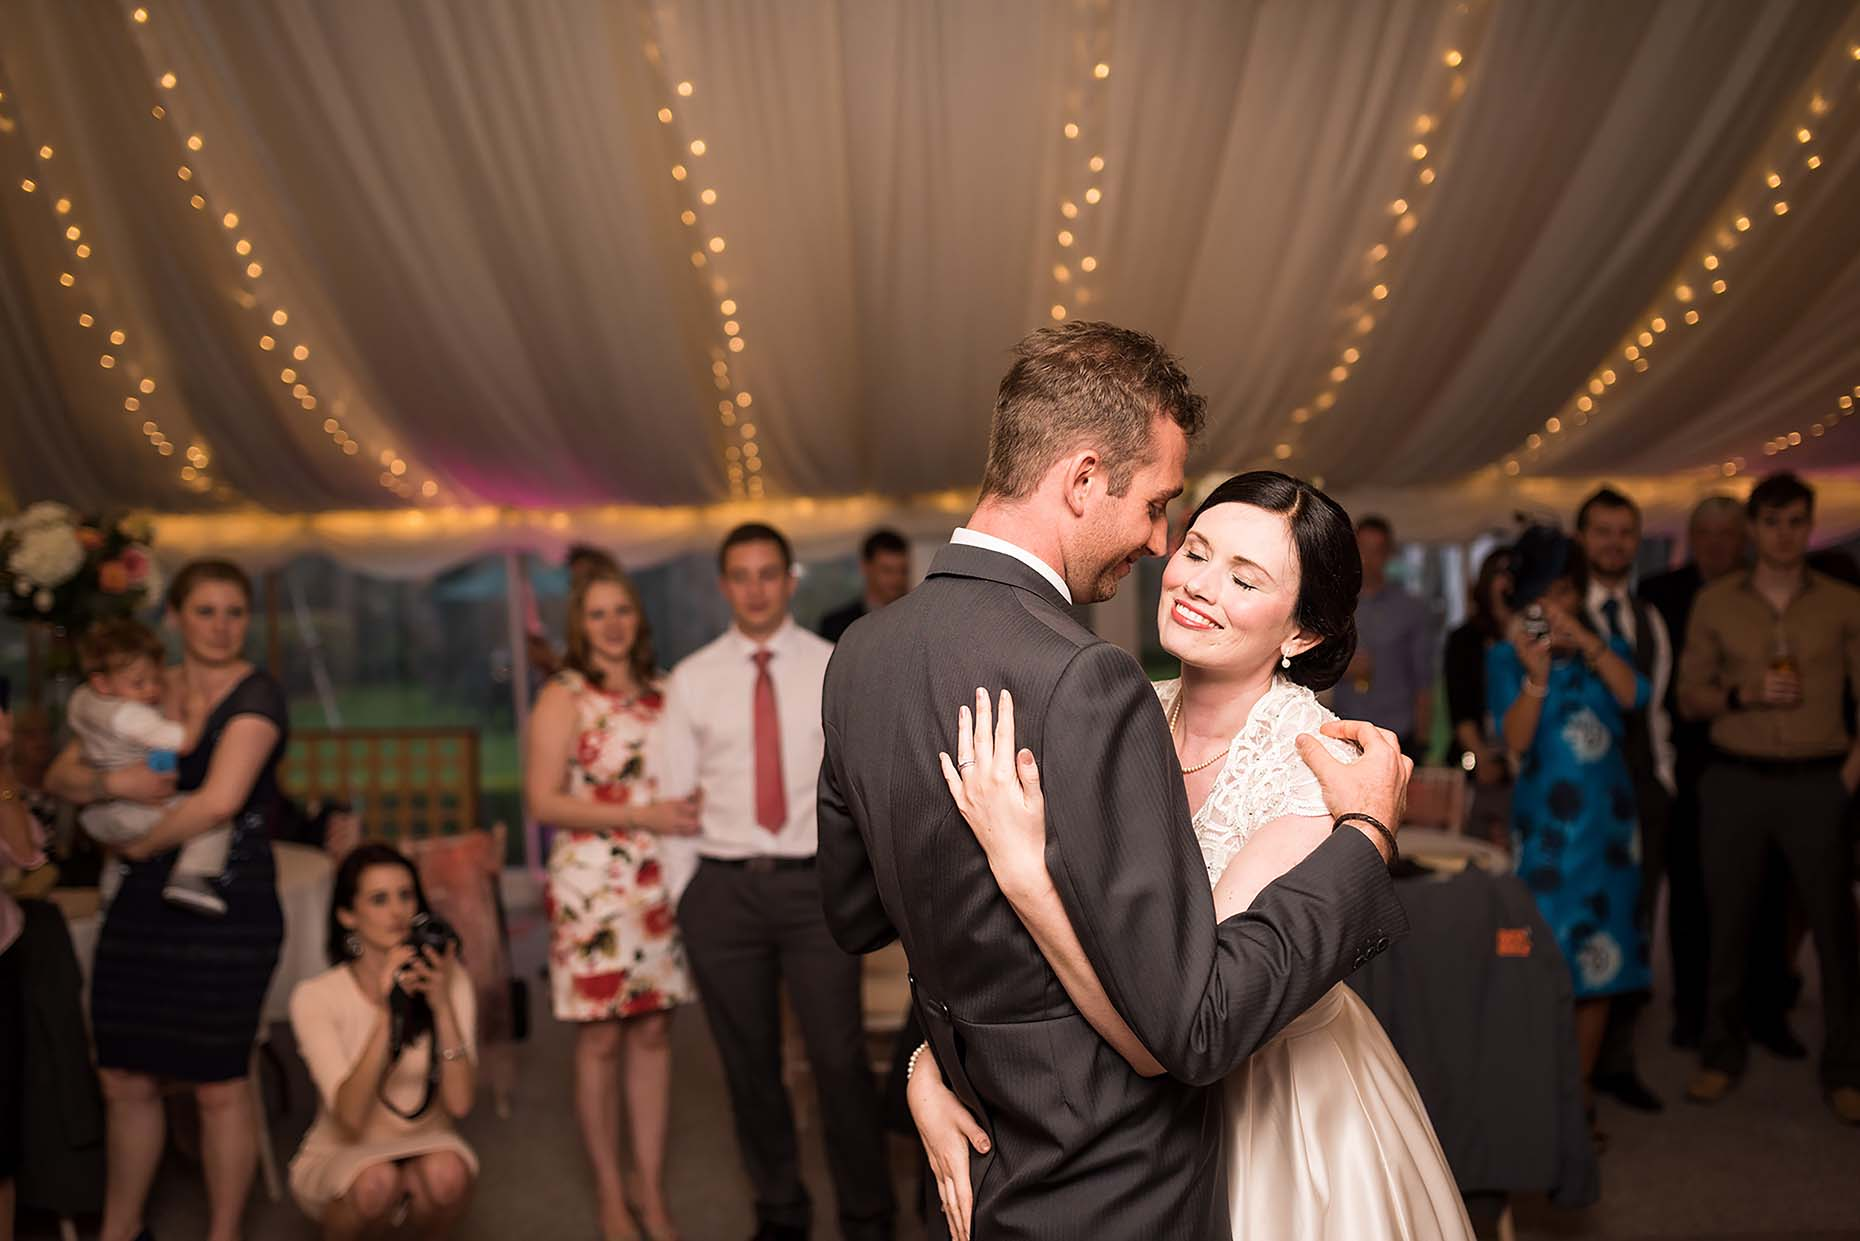 first-dance-katie-hampshire-wedding-marquee-love-romance-14